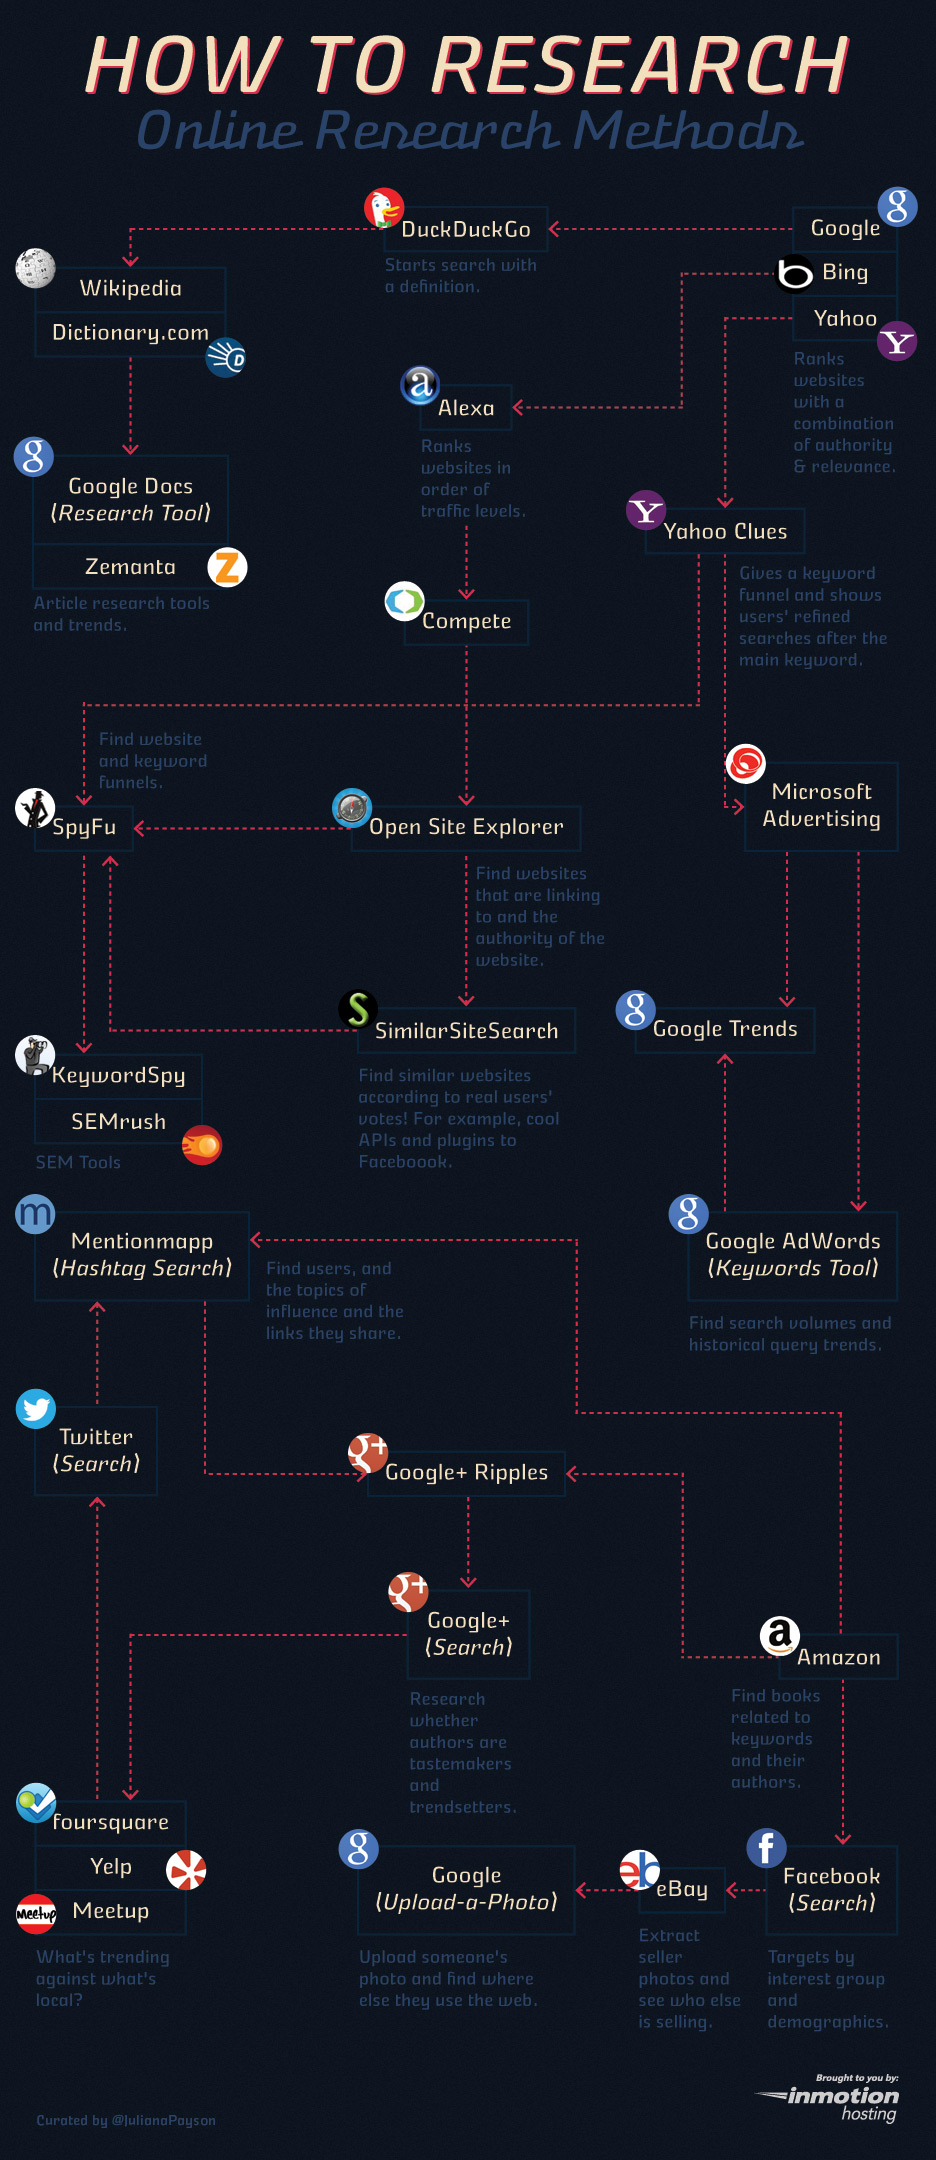 How to do Research On the web and social media - #Infographic learn the methods of researching on the internet